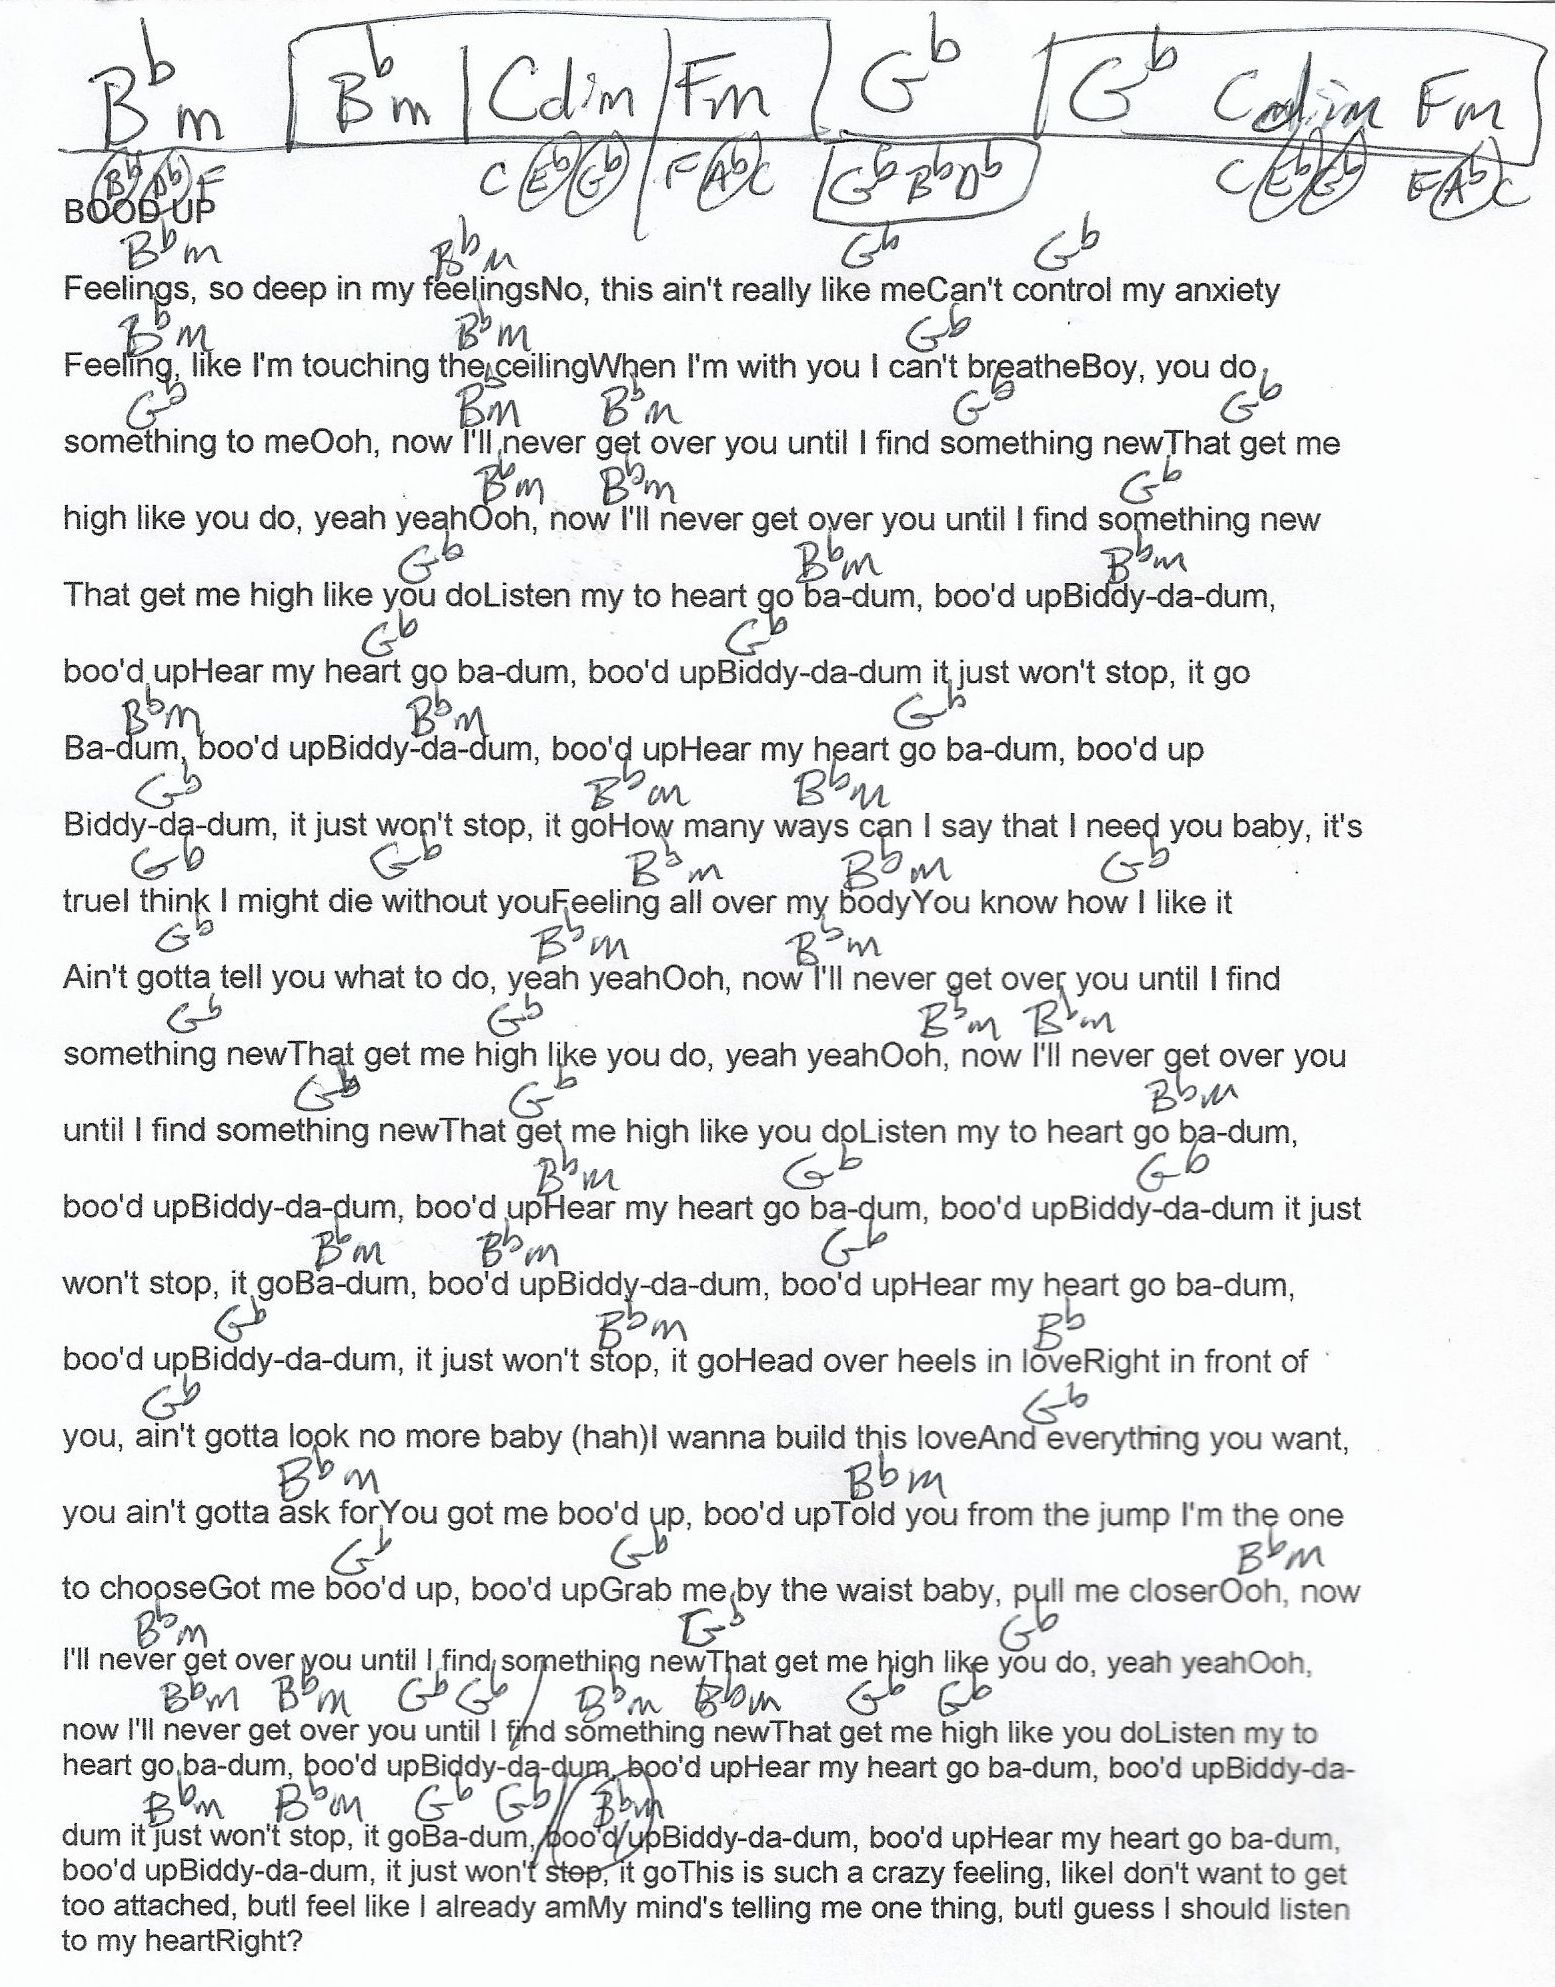 Imgenes De Ill Never Get Over You Lyrics And Chords